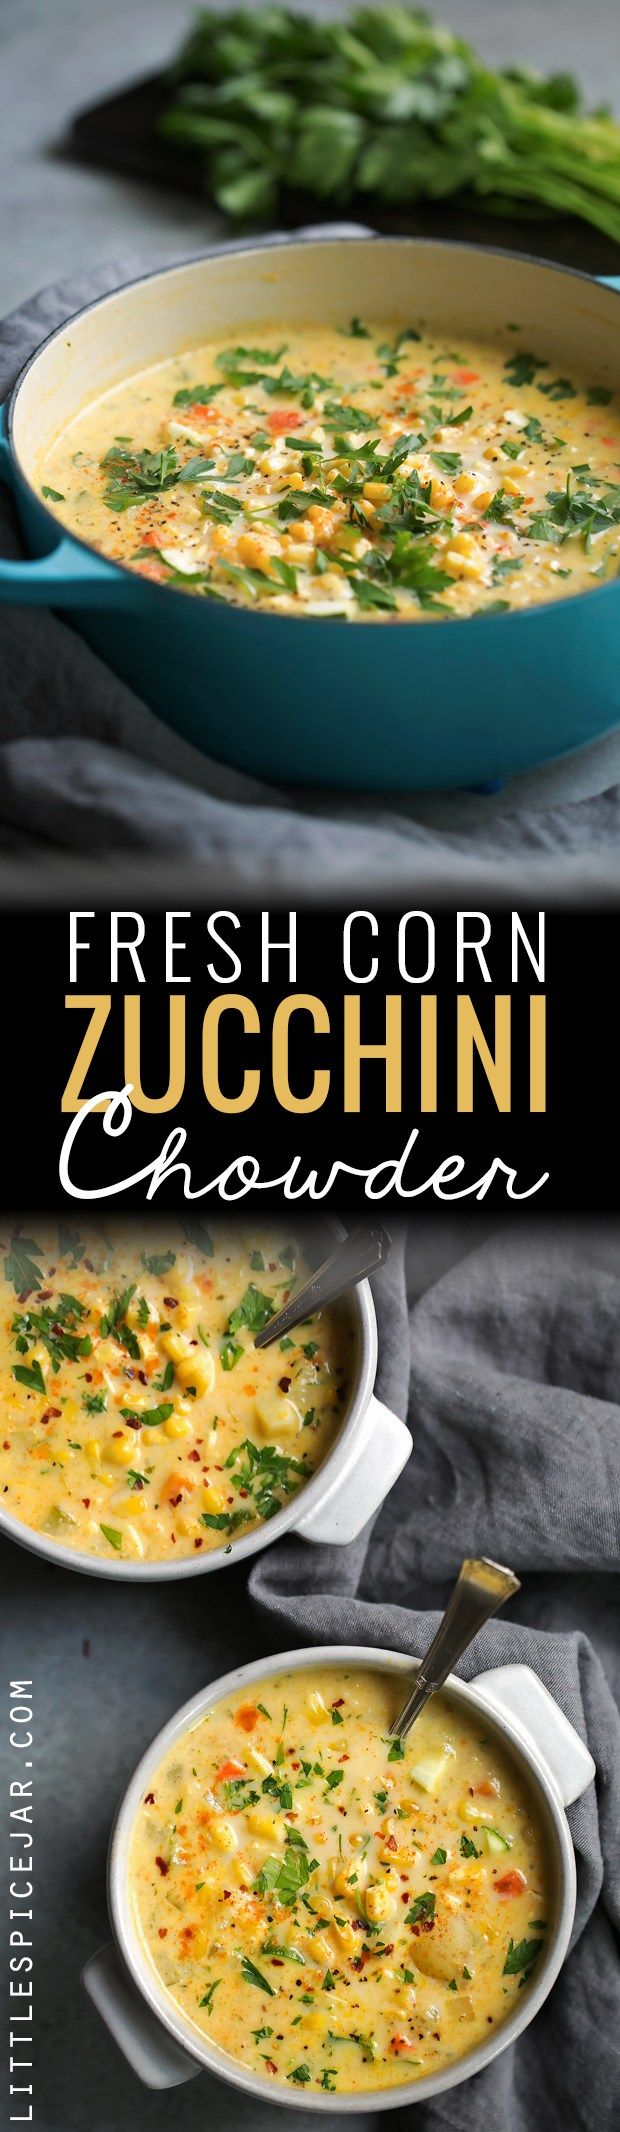 Fresh Corn Zucchini Chowder - The perfect way to use up all that summer produce! Creamy chowder loaded with fresh corn and zucchini and chopped jalapeños! #cornchowder #chowder #zucchinichowder | Littlespicejar.com